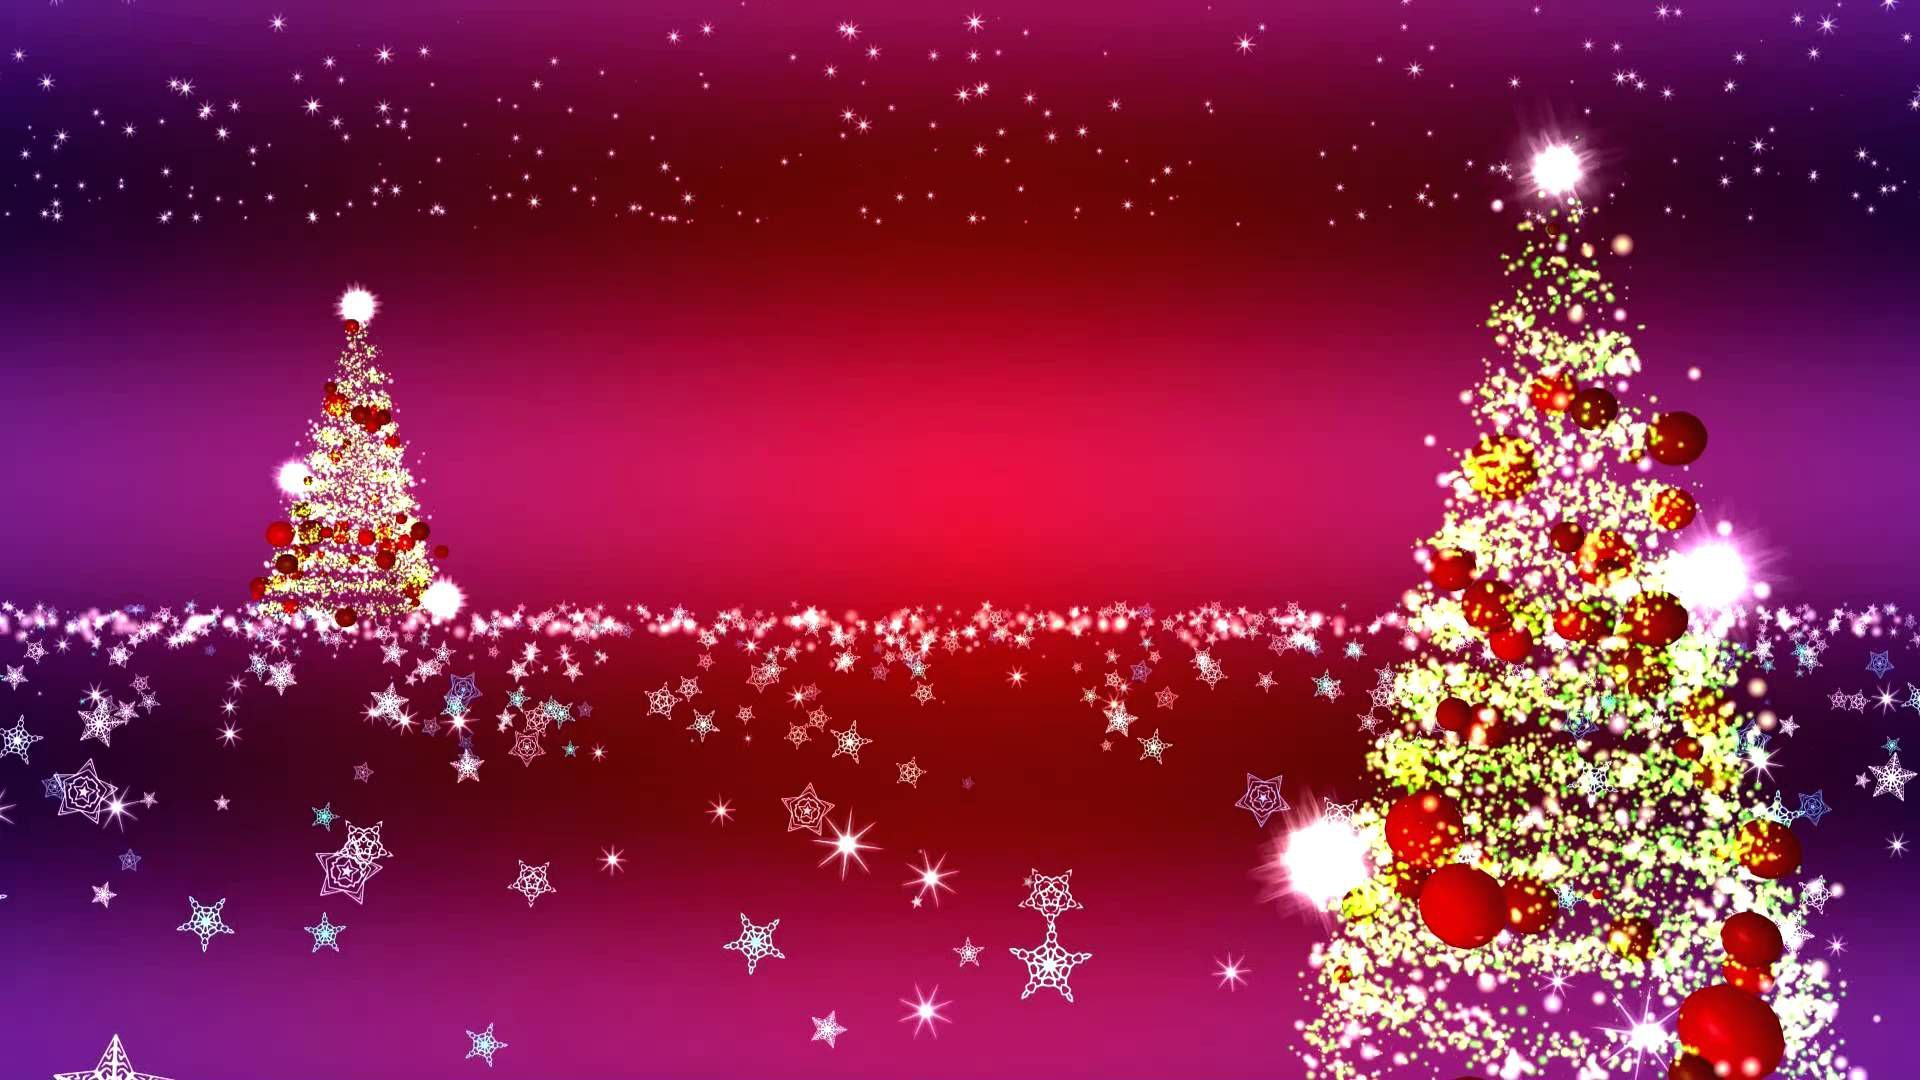 Merry christmas wallpaperpinterest hd voltagebd Image collections